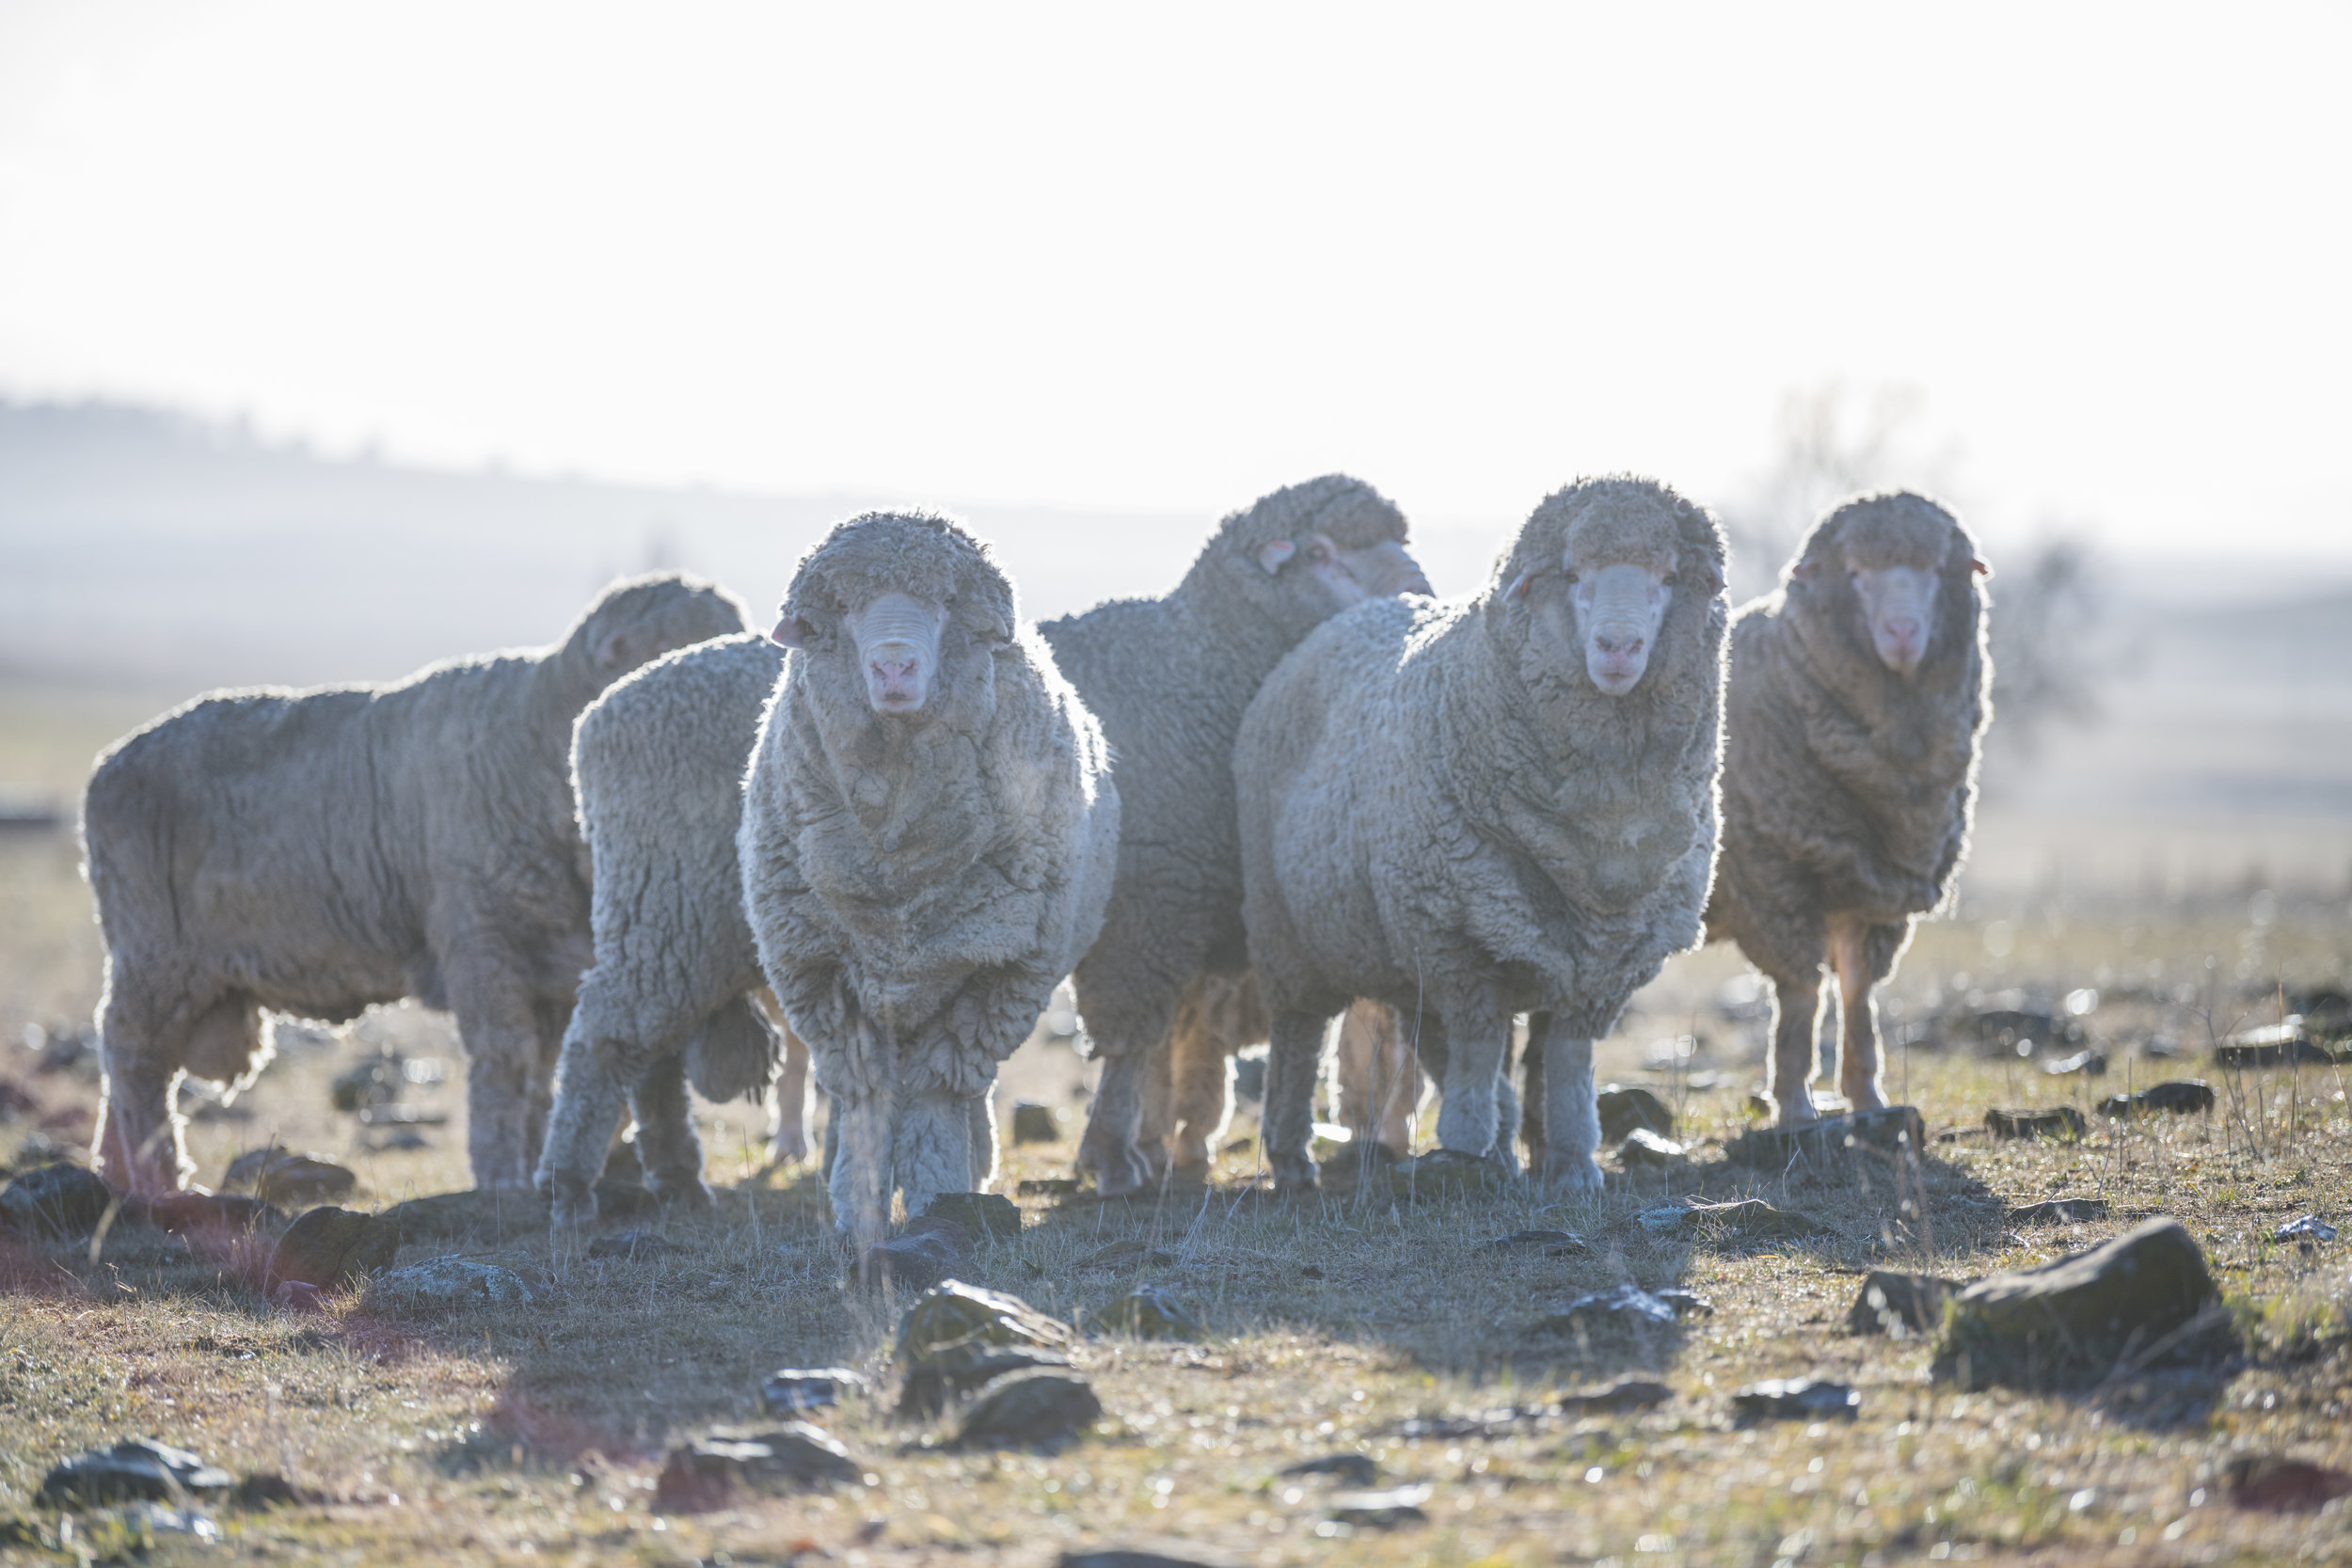 INCREASE FLEECE WEIGHT WITHOUT LOSING WOOL QUALITY